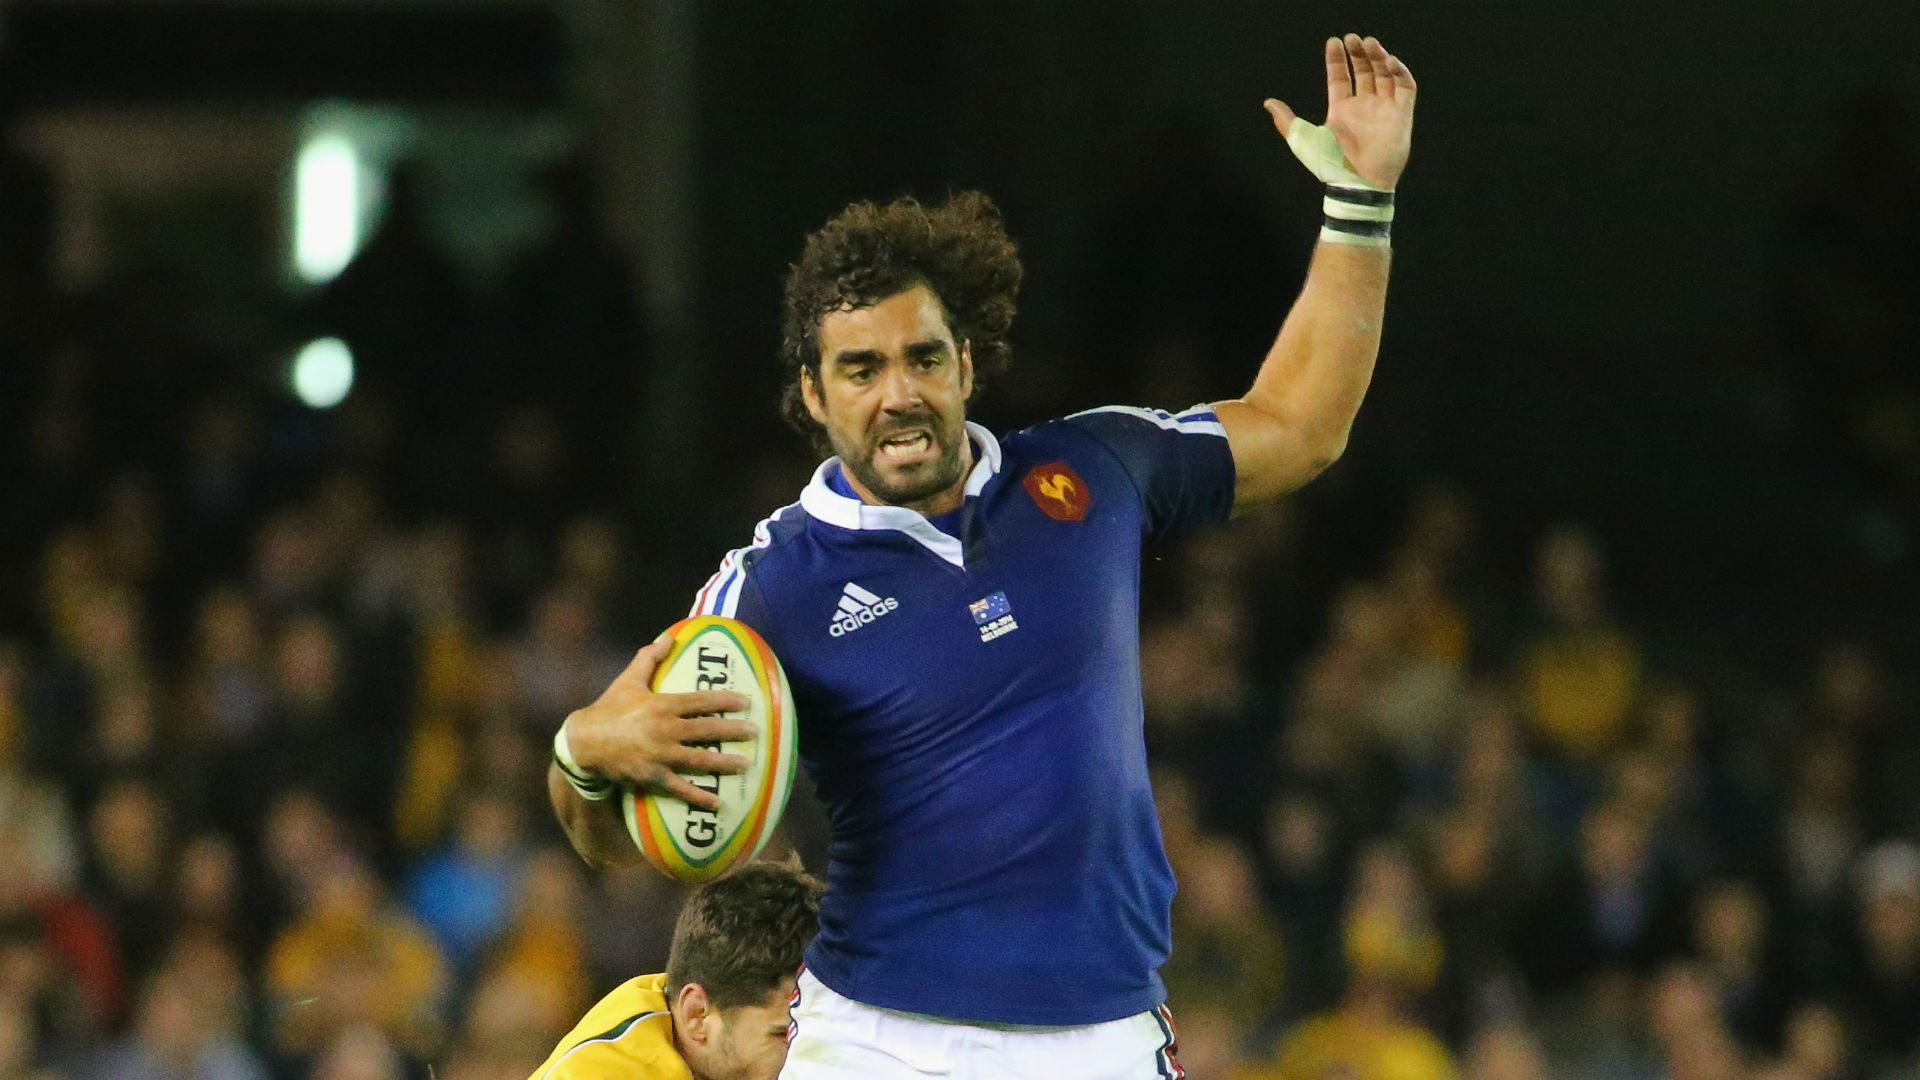 Huget to make first France appearance in a year